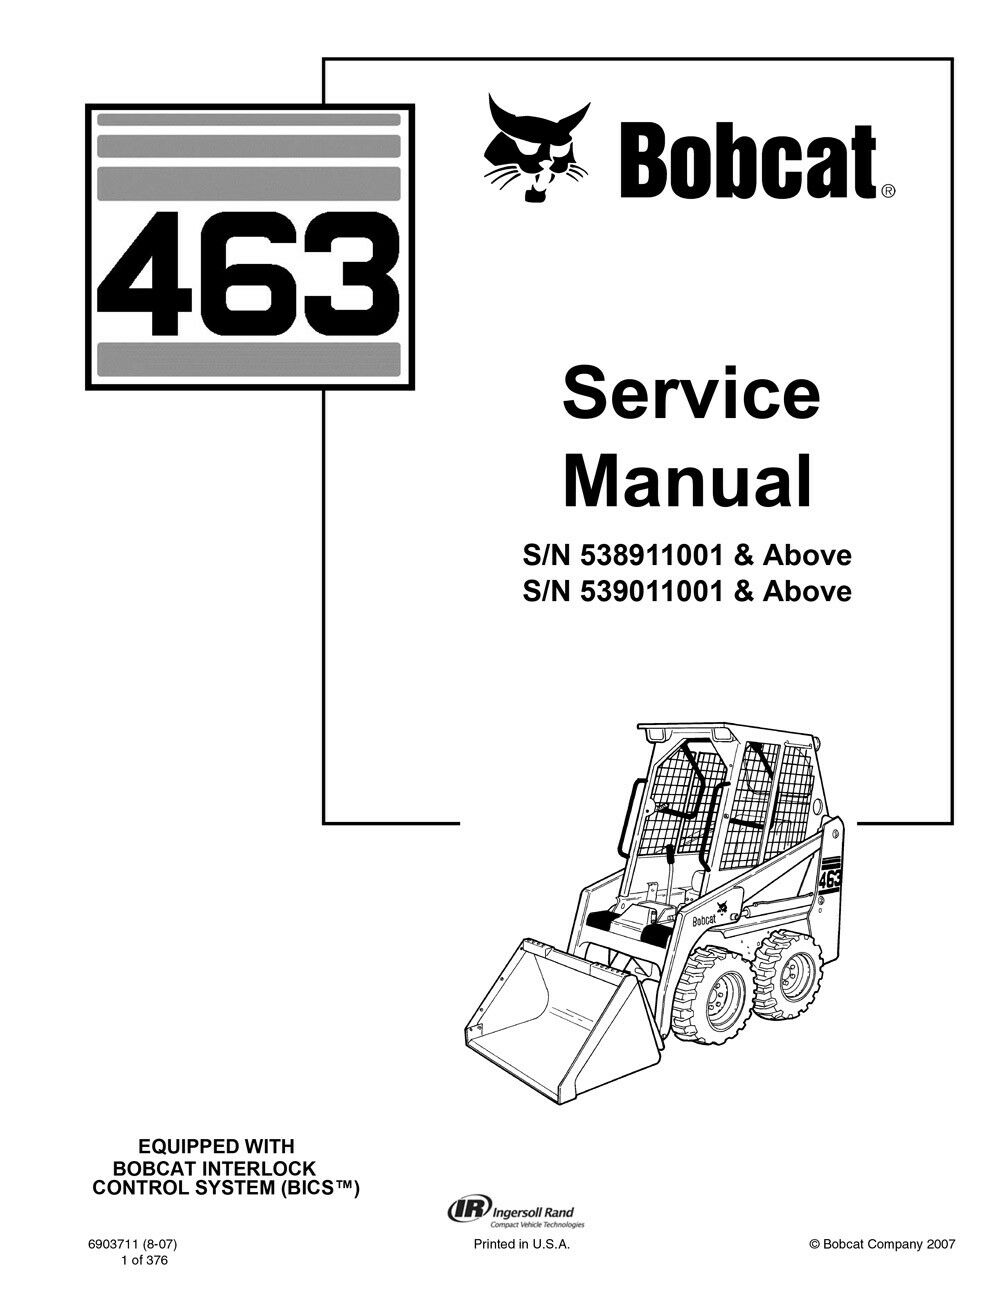 Bobcat 763 Engine Diagram. pictures for bobcat 763 parts